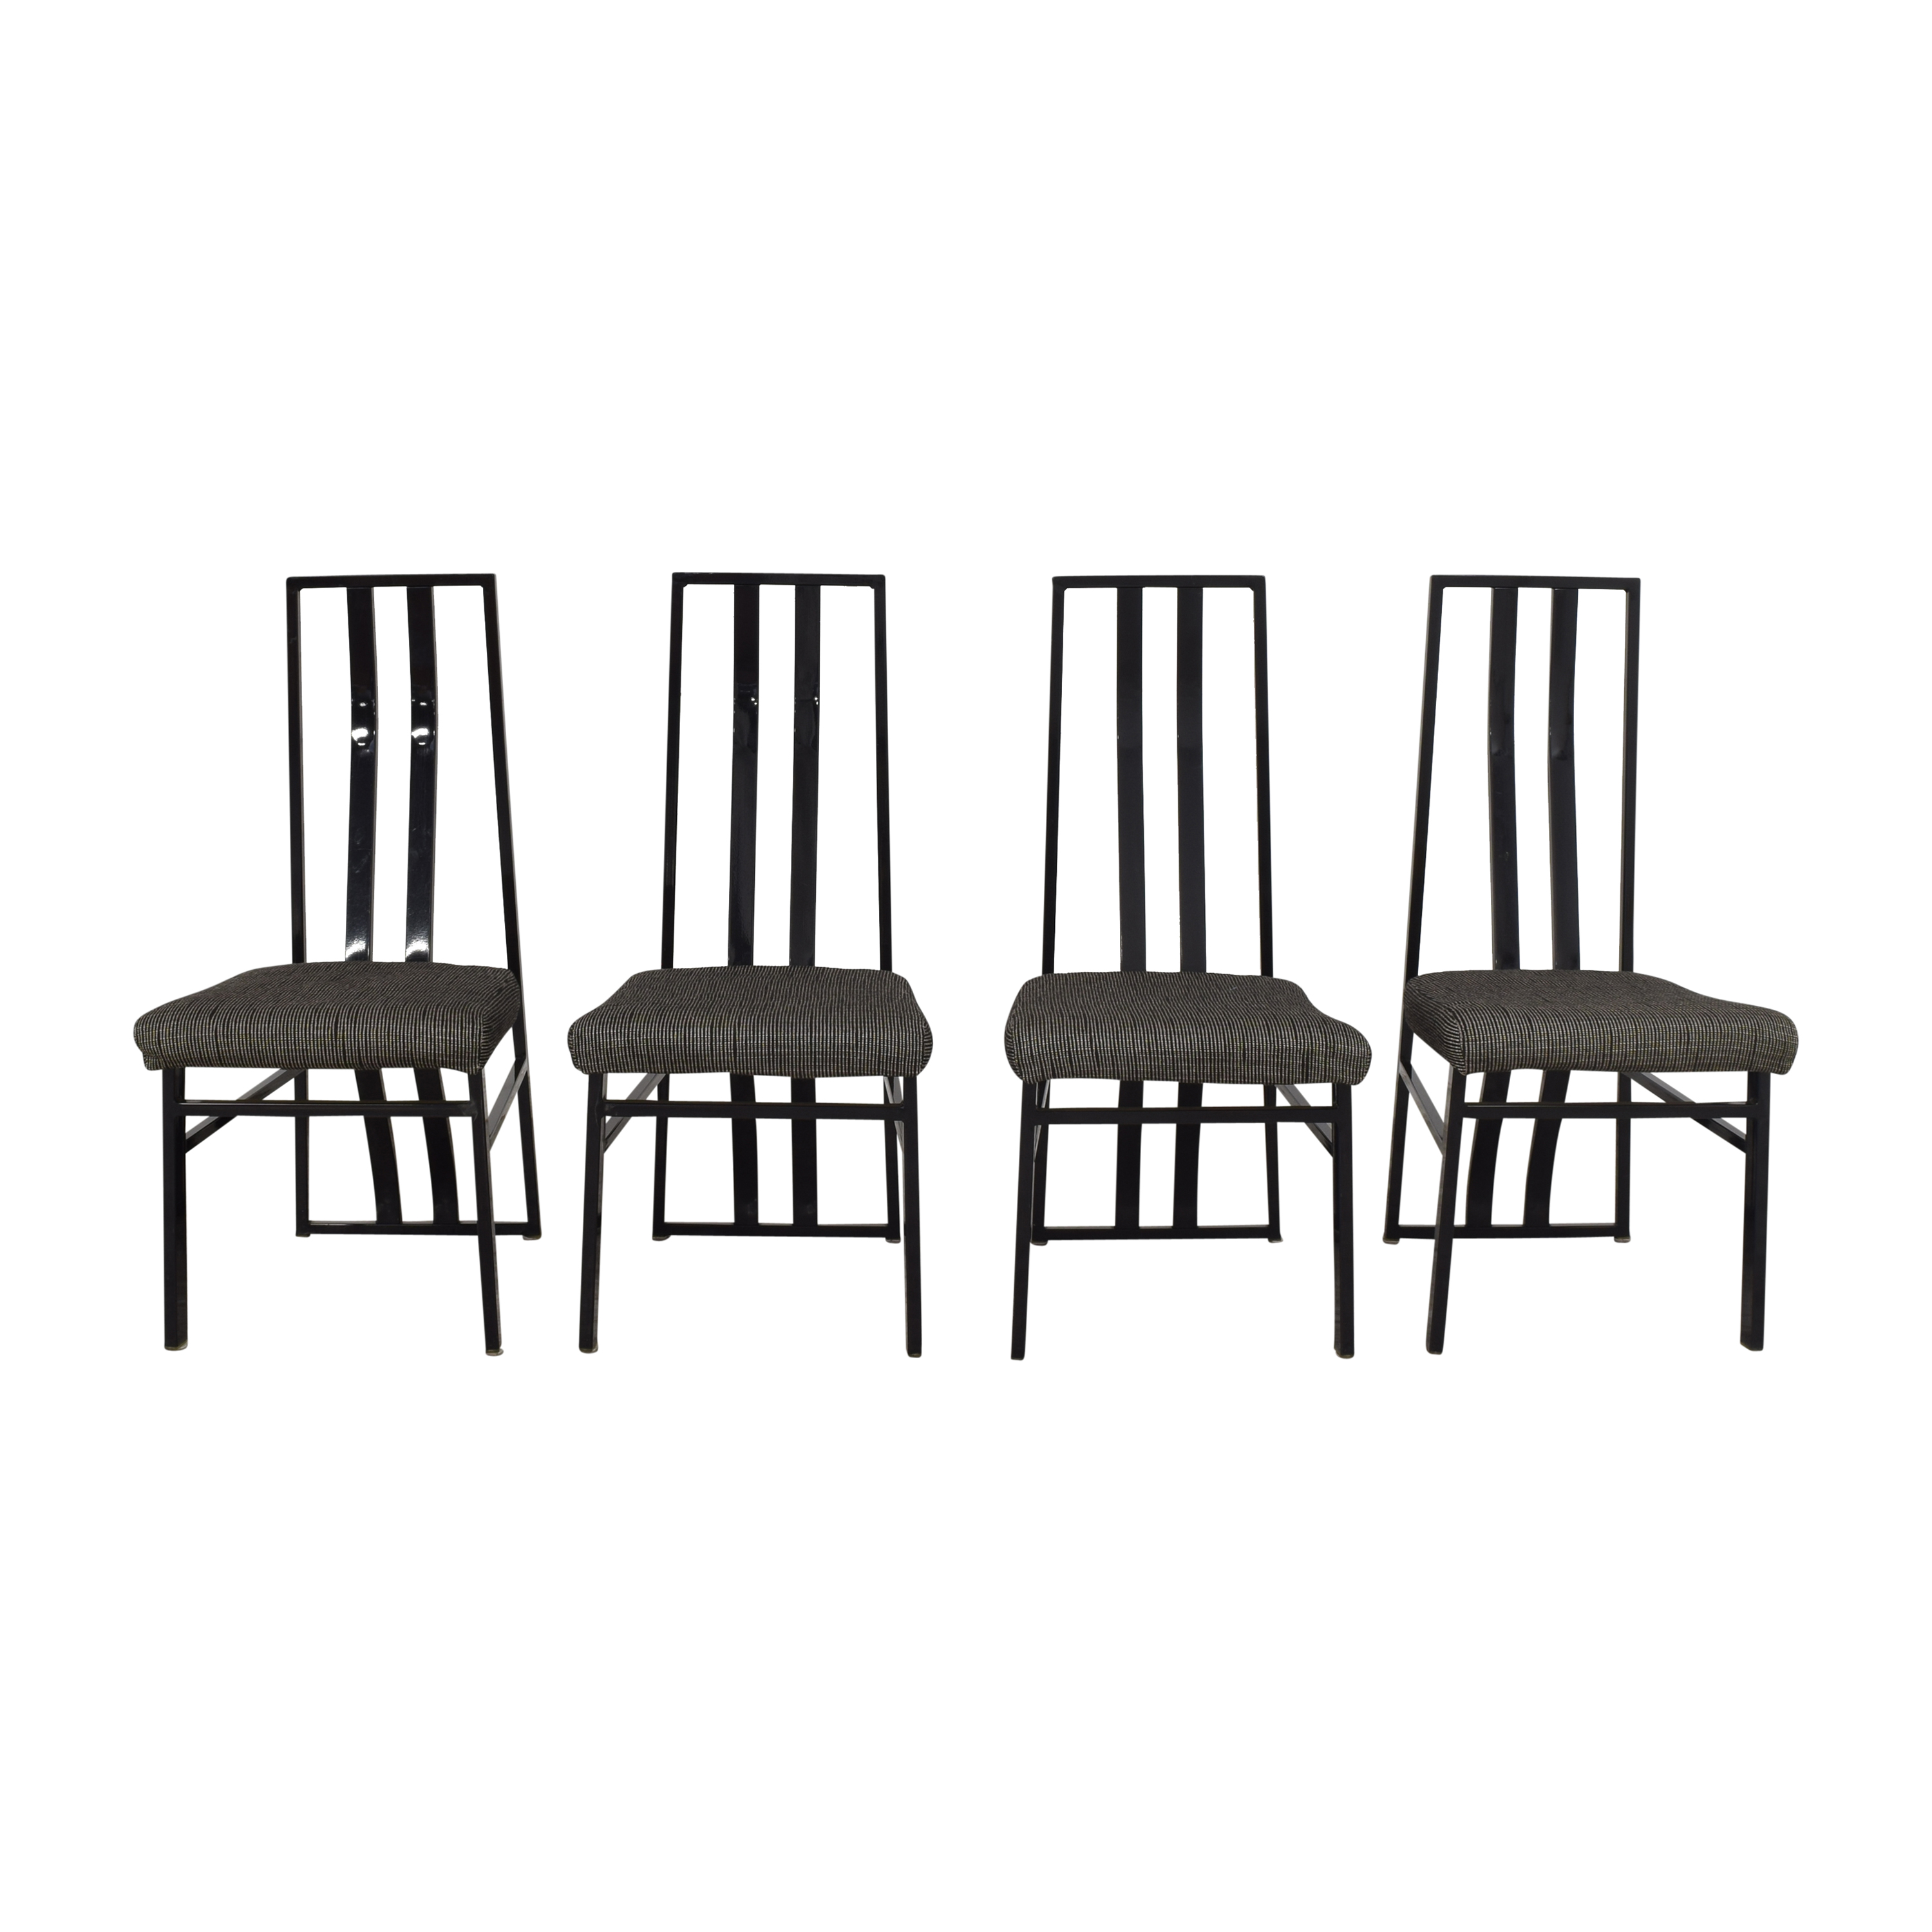 Cal Style Furniture Manufacturing Company Cal-Style Mfg Co Modern High Back Dining Chairs price